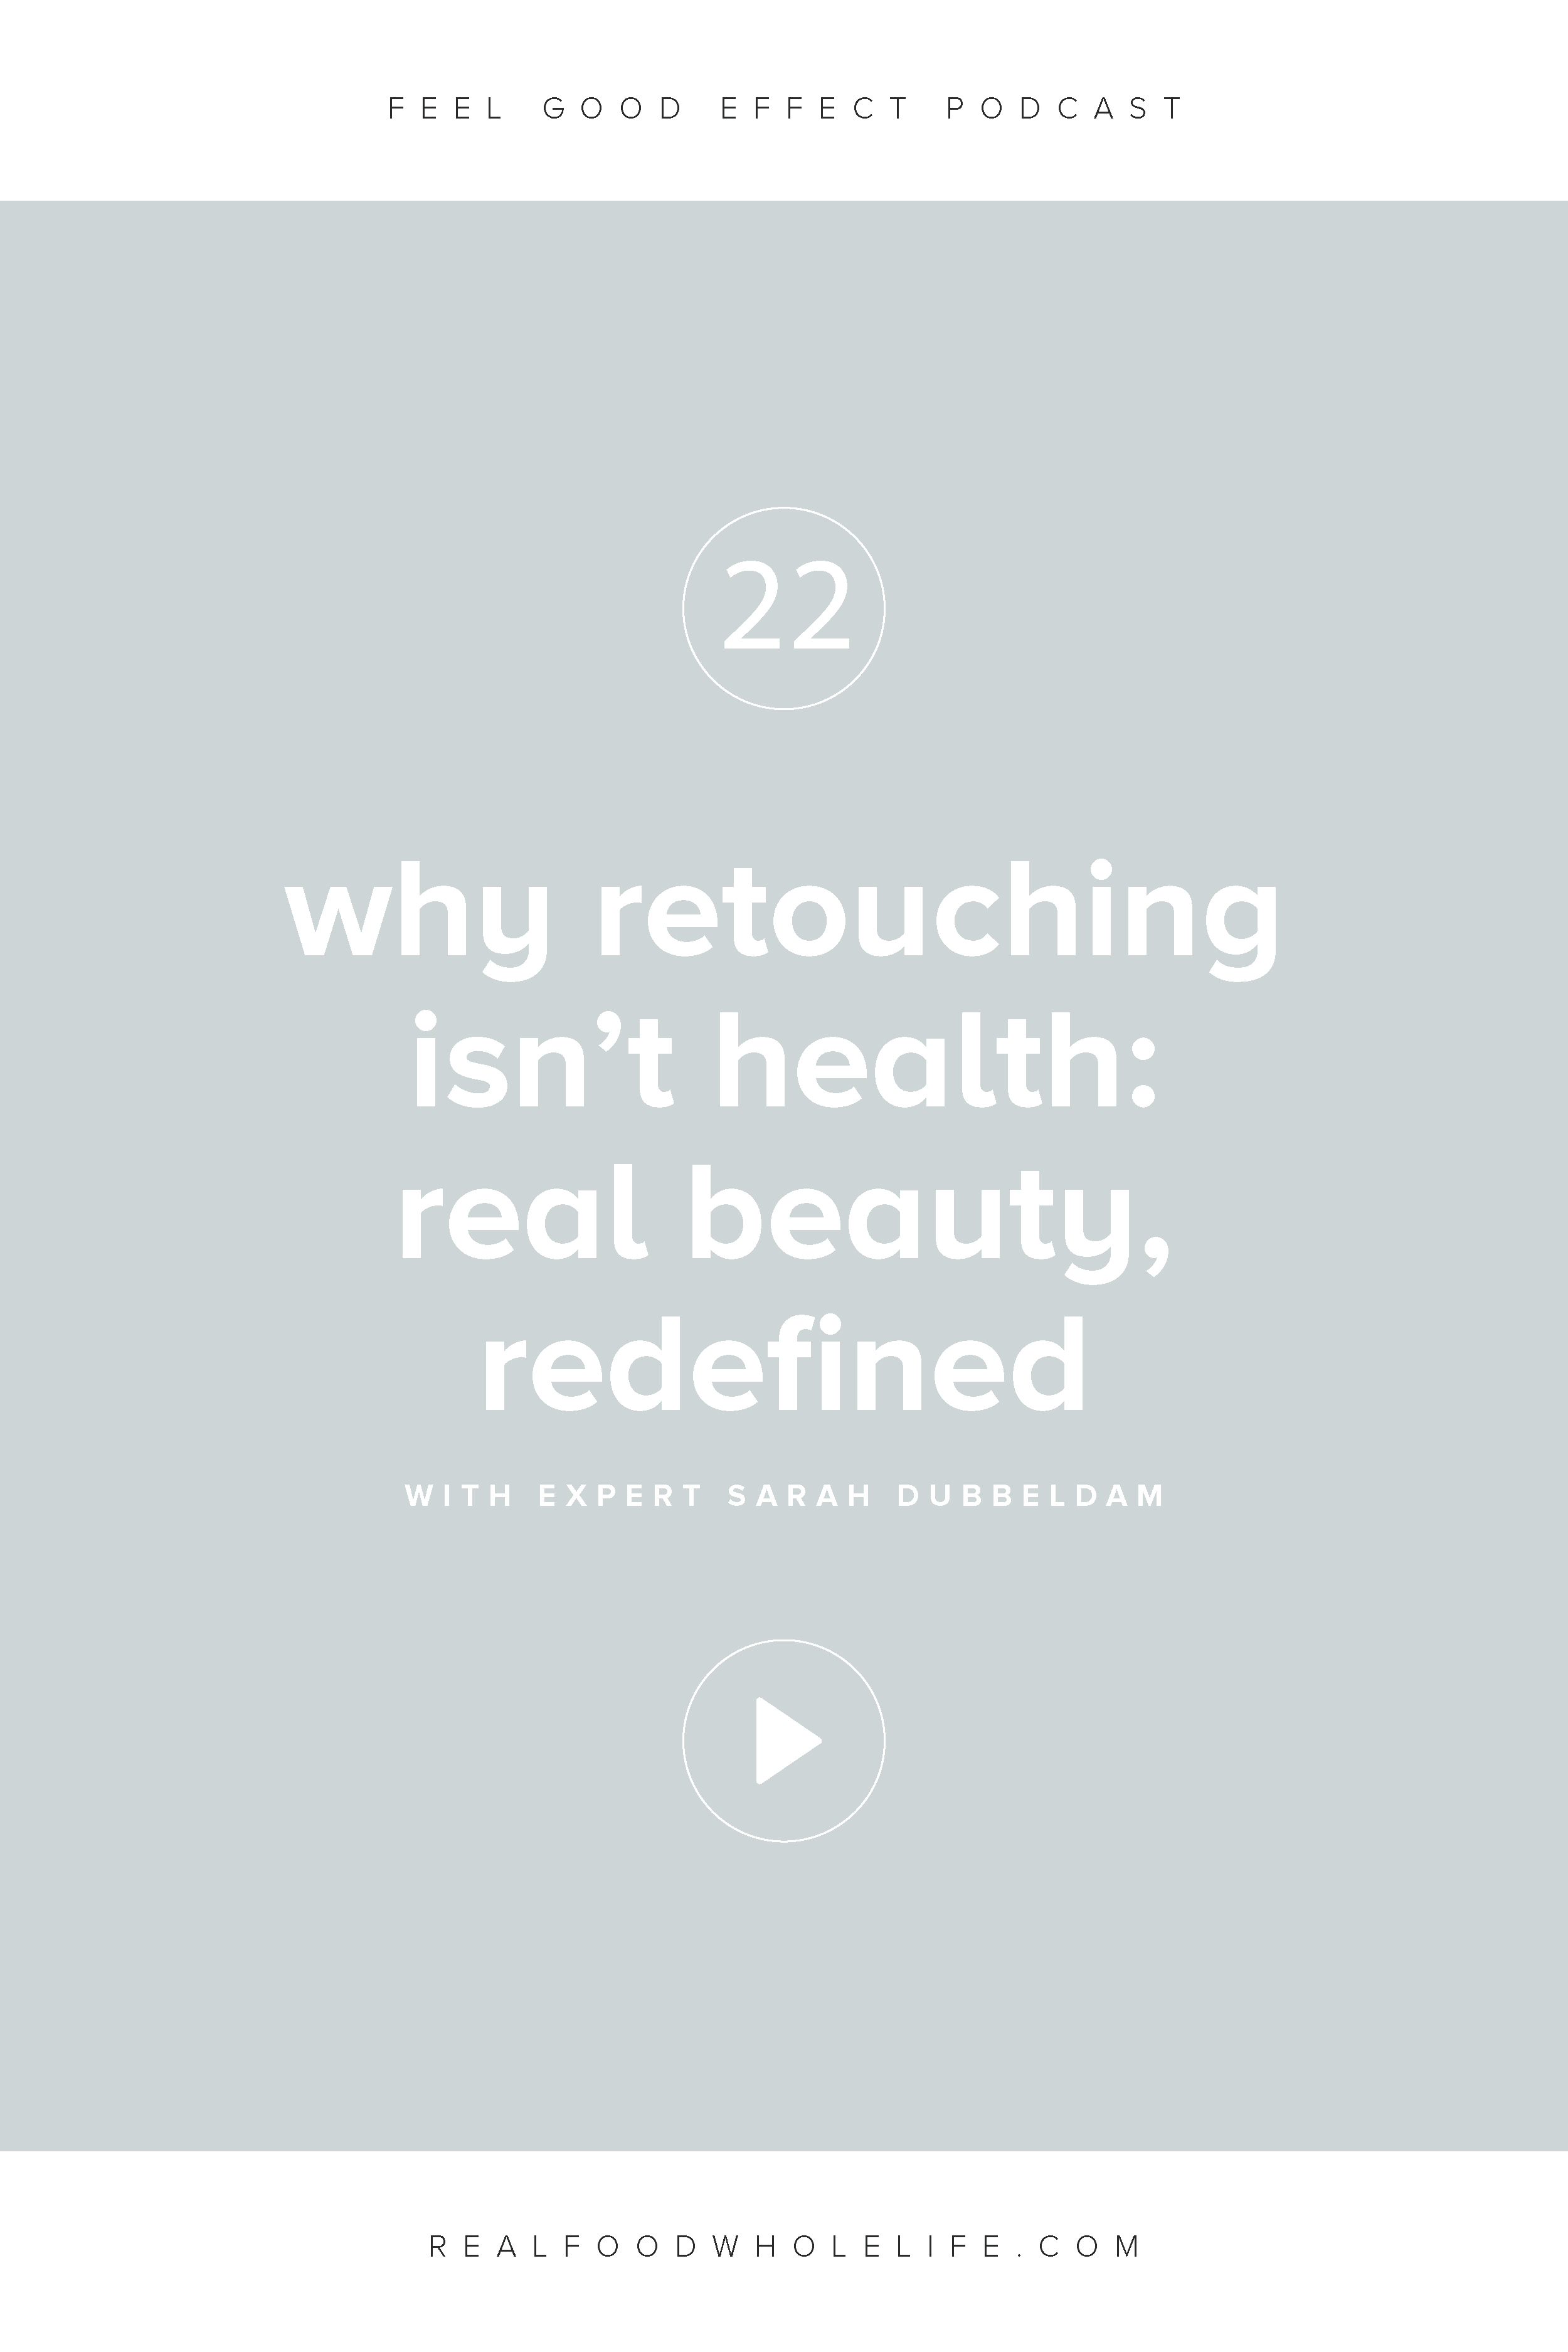 Why Retouching Isn't Health: Real Beauty, Redefined with Sarah Dubbeldam